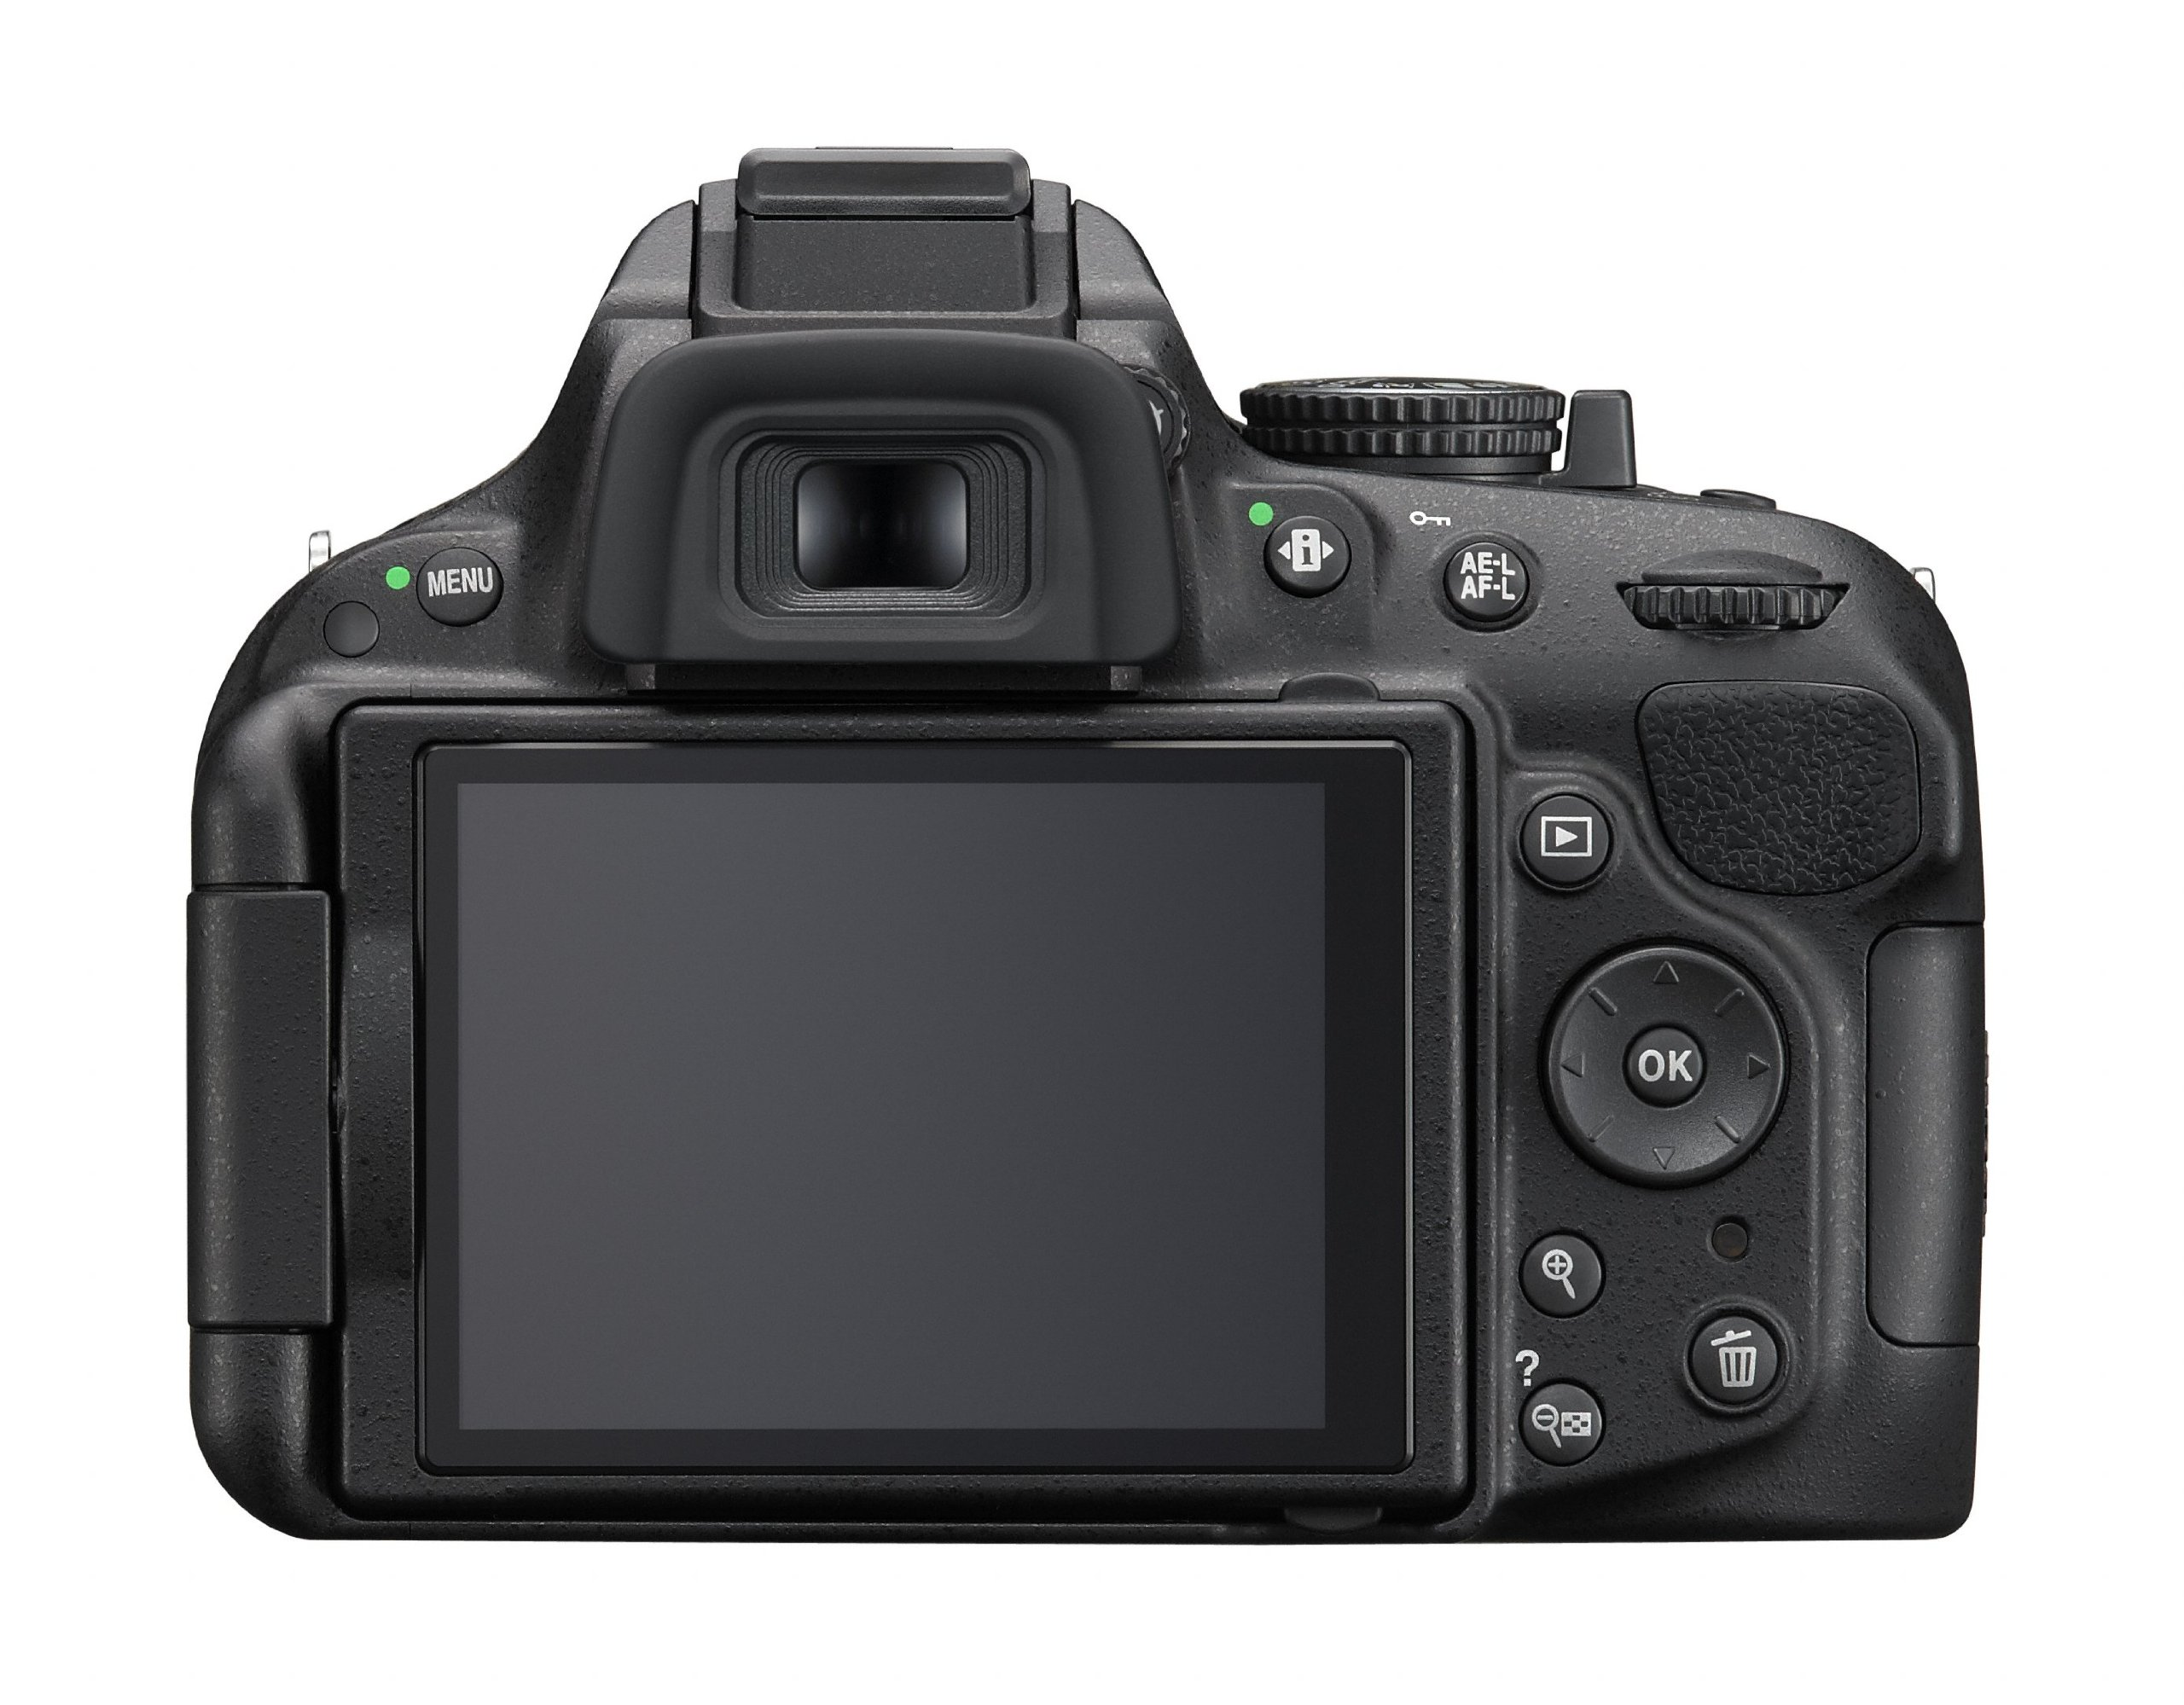 Nikon D5200 24.1 MP CMOS Digital SLR Camera Body Only (Black) by Nikon (Image #2)